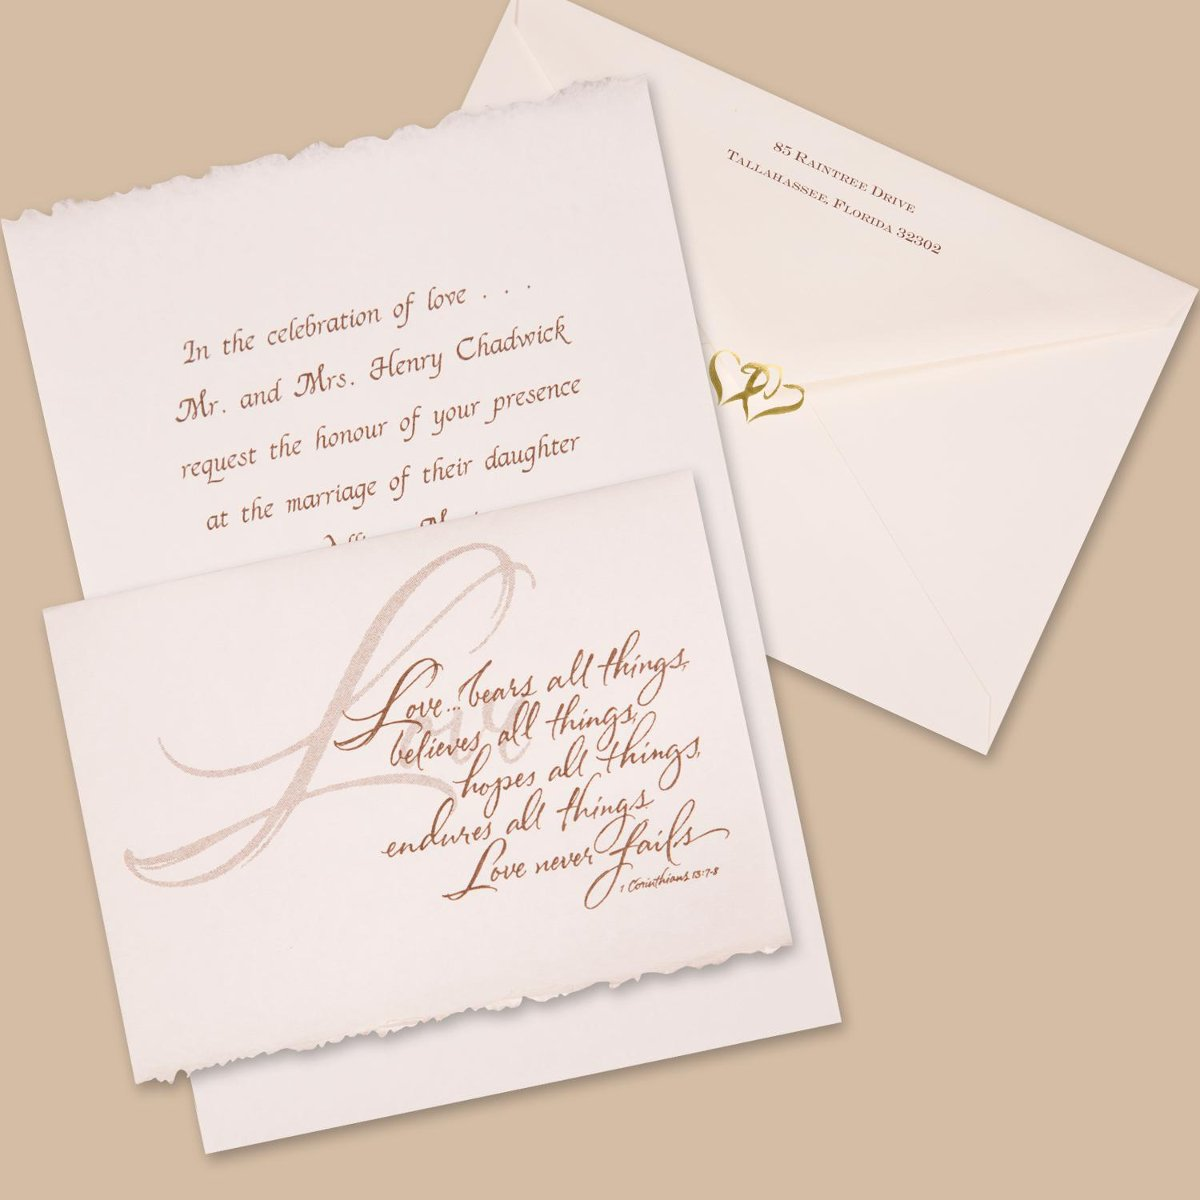 christian wedding invitation wordings for friends spanish wedding invitations just believe wedding invitations a french fold of white deckle edge